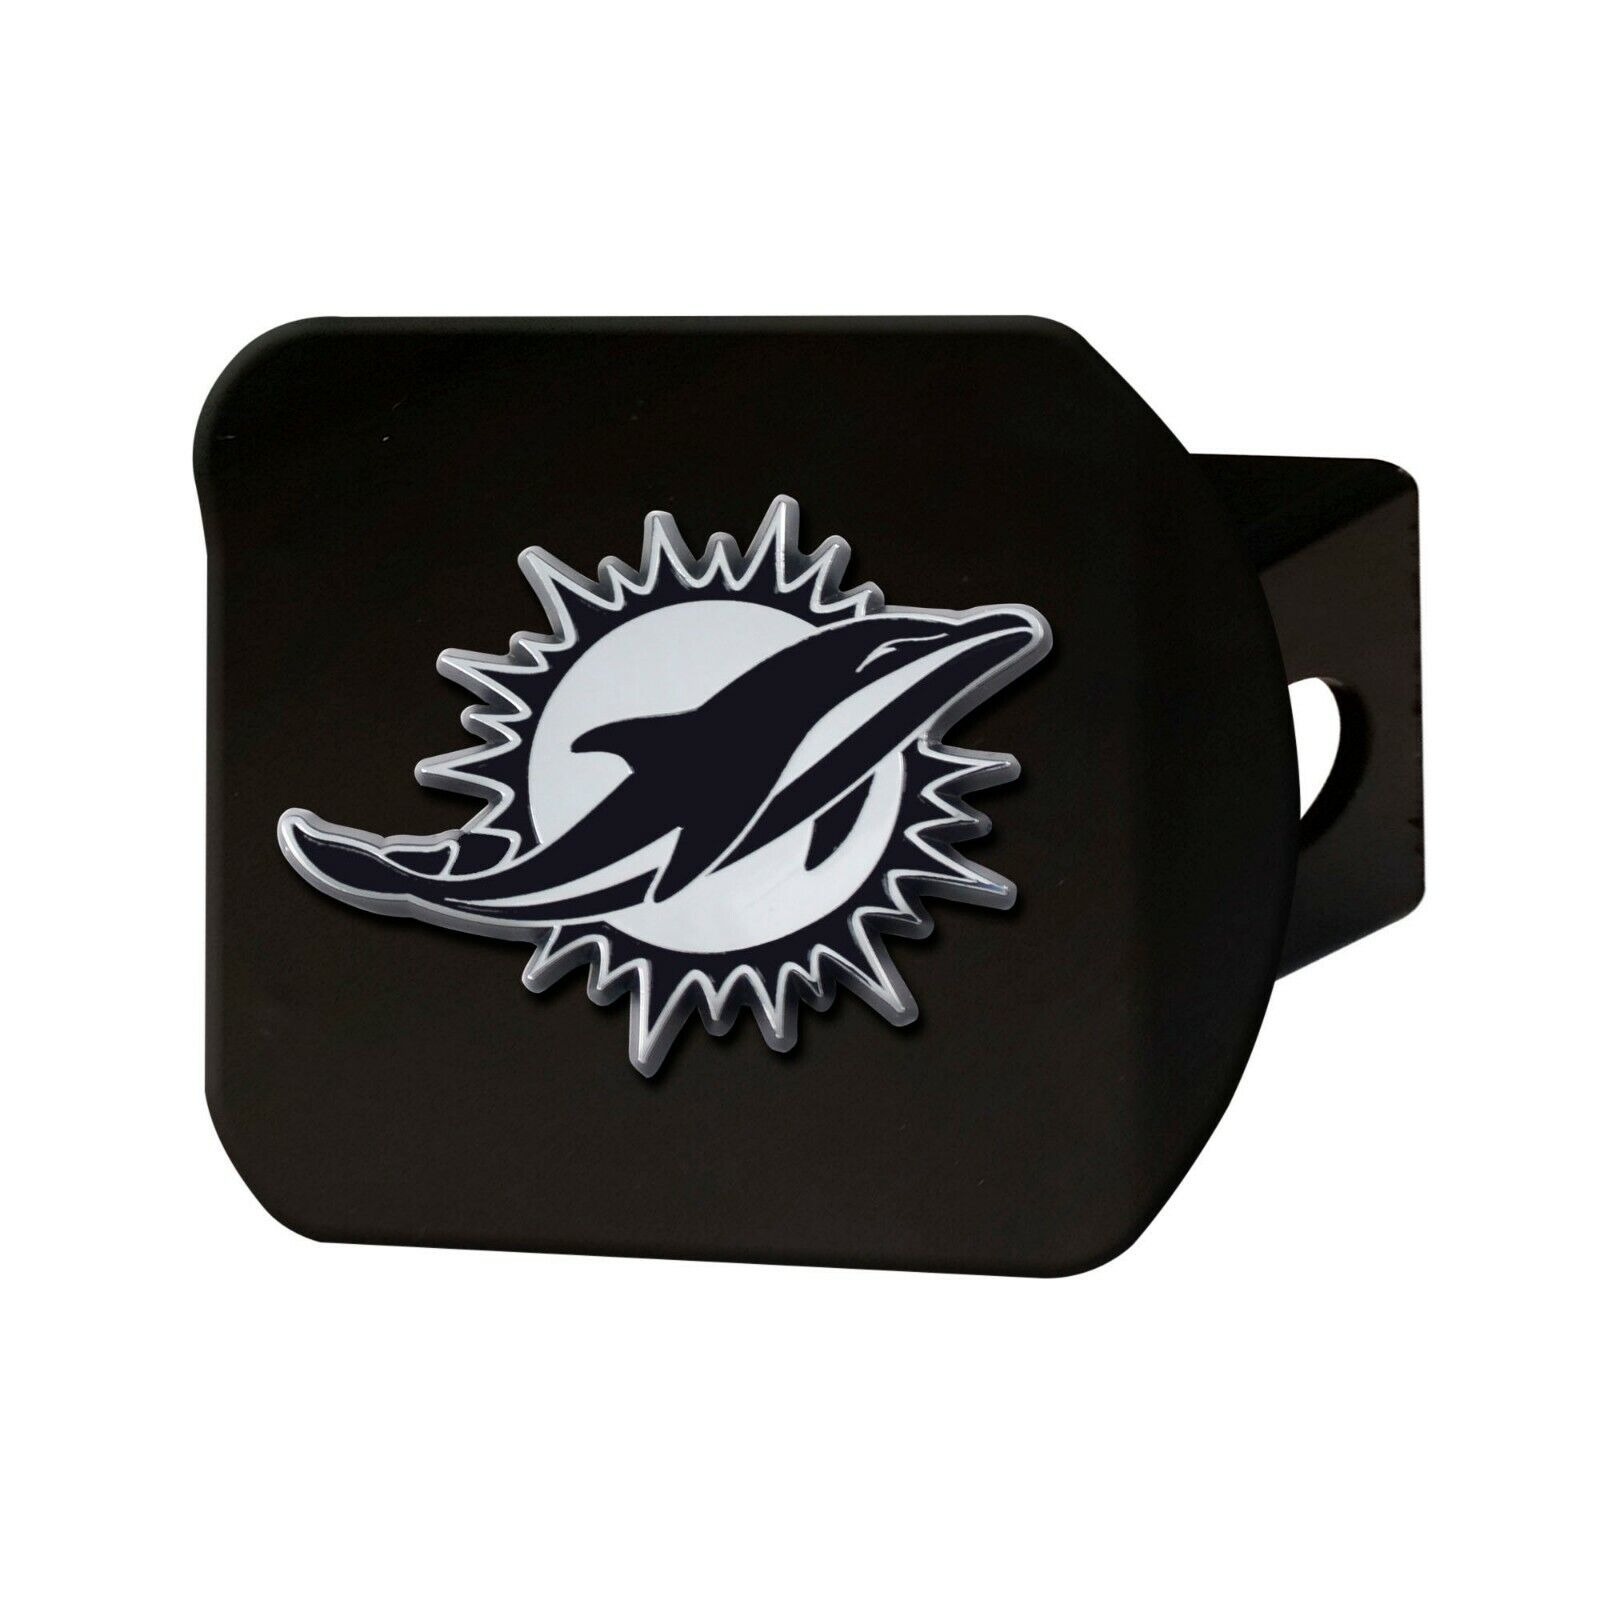 15602 NFL Miami Dolphins Metal Hitch Cover 2 Square Type III Hitch Cover Chrome FANMATS